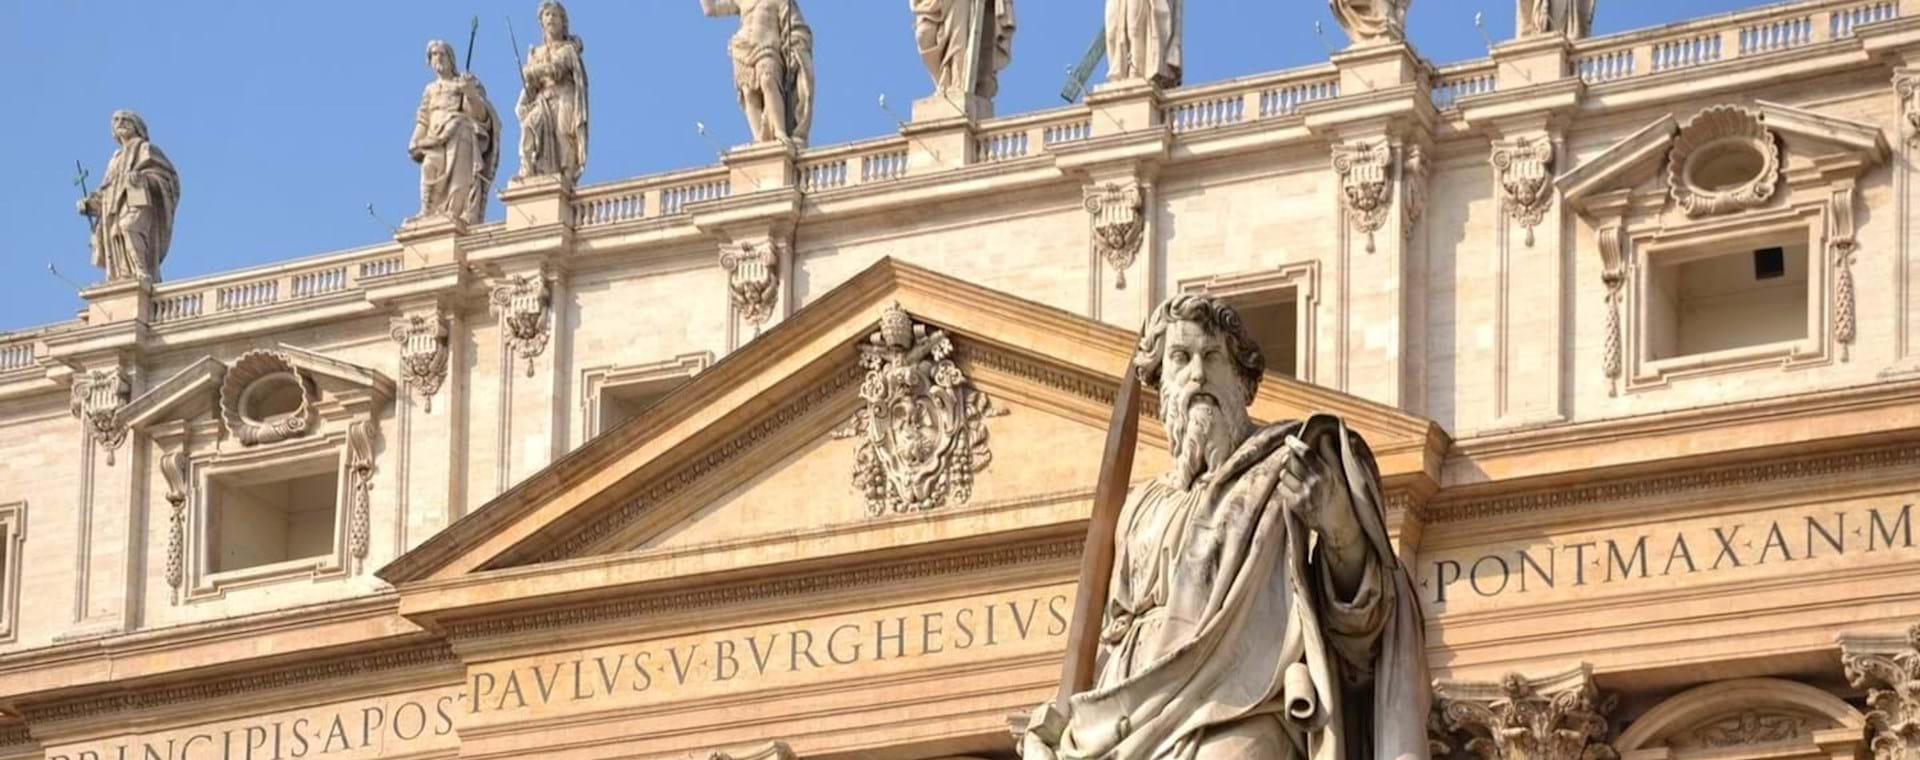 Private Complete Vatican Museums & Sistine Chapel Tour, with Bramante Staircase & St. Peter's Basilica